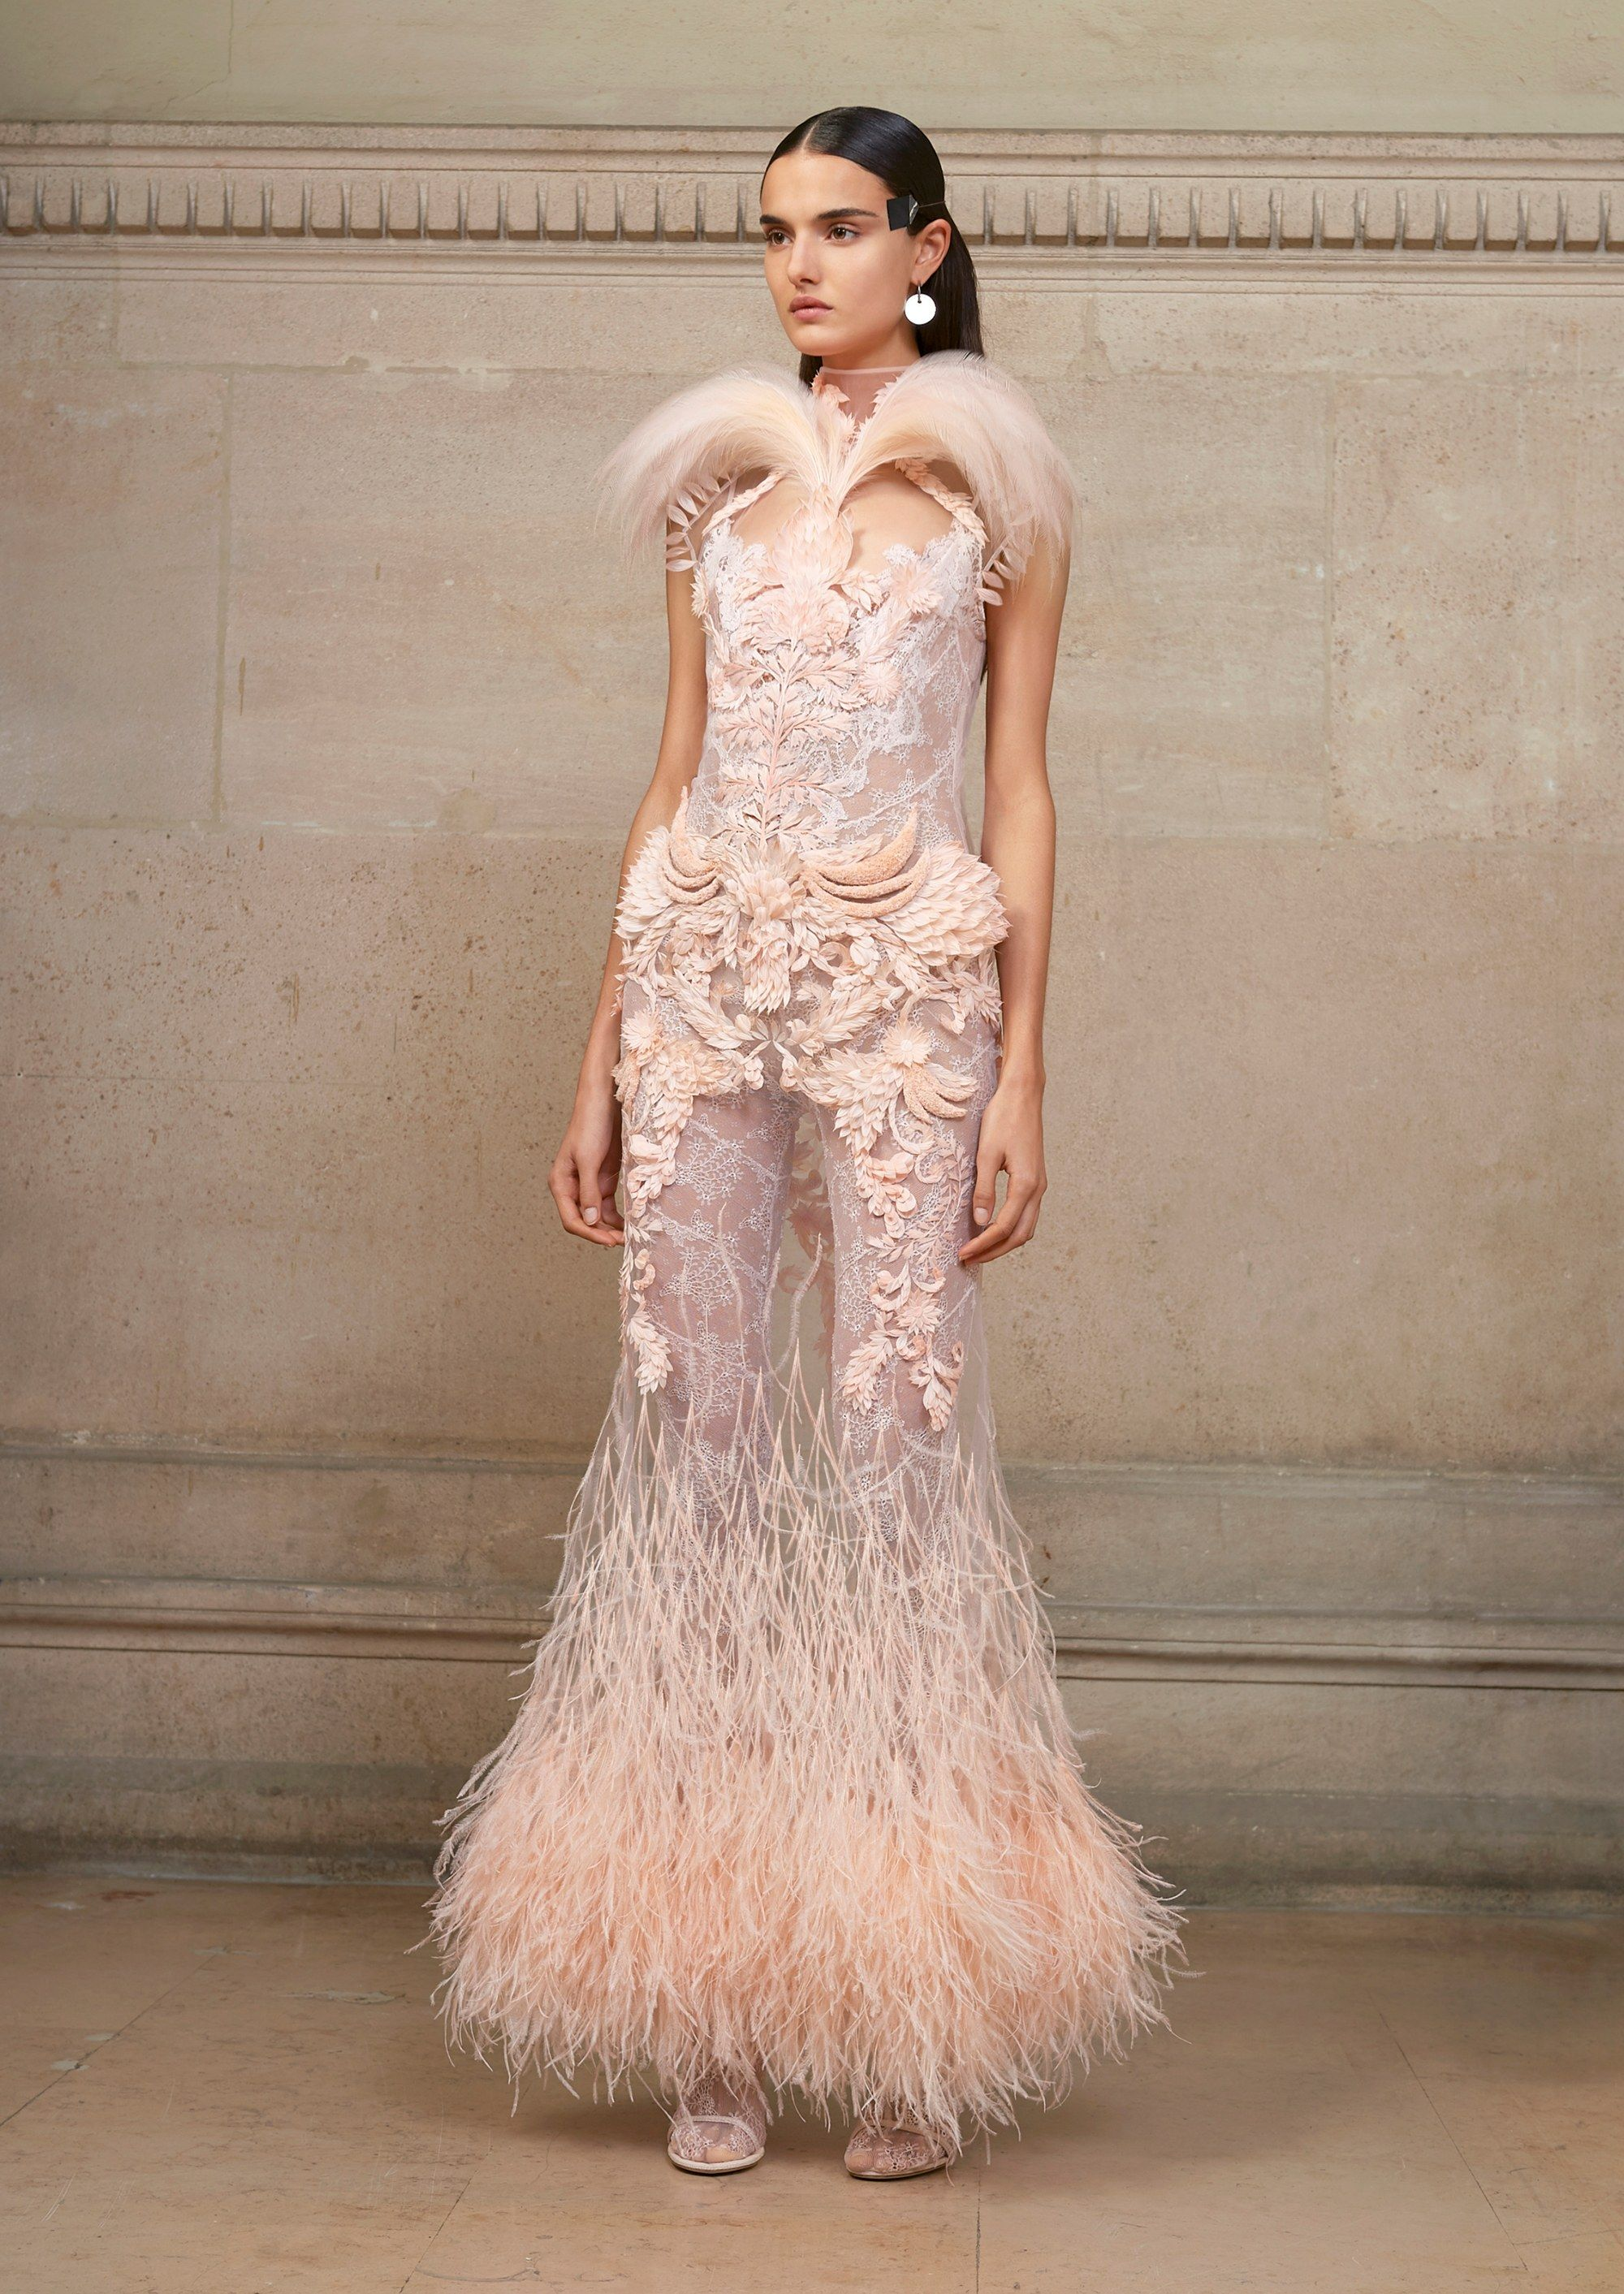 givenchy spring 2017 couture fashion show couture collection